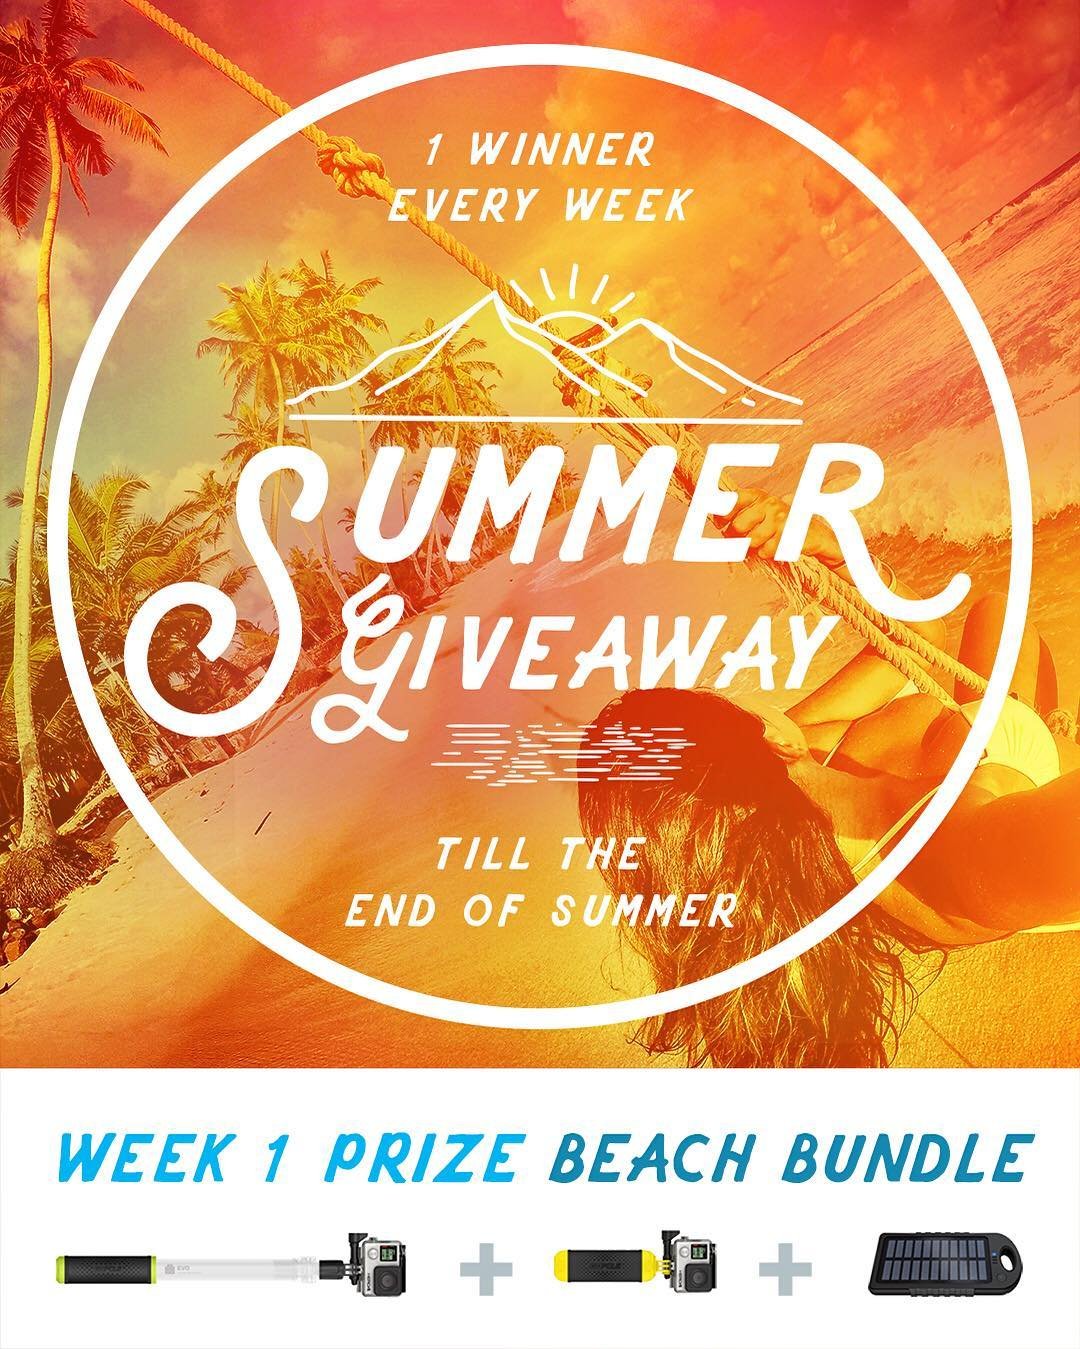 GoPole Summer Giveaway! We will randomly select 1 winner a week (every Monday) for the rest of the summer. New prizes weekly! Enter daily to increase your chances. No purchase necessary, enter once or enter every day to increase your changes of...